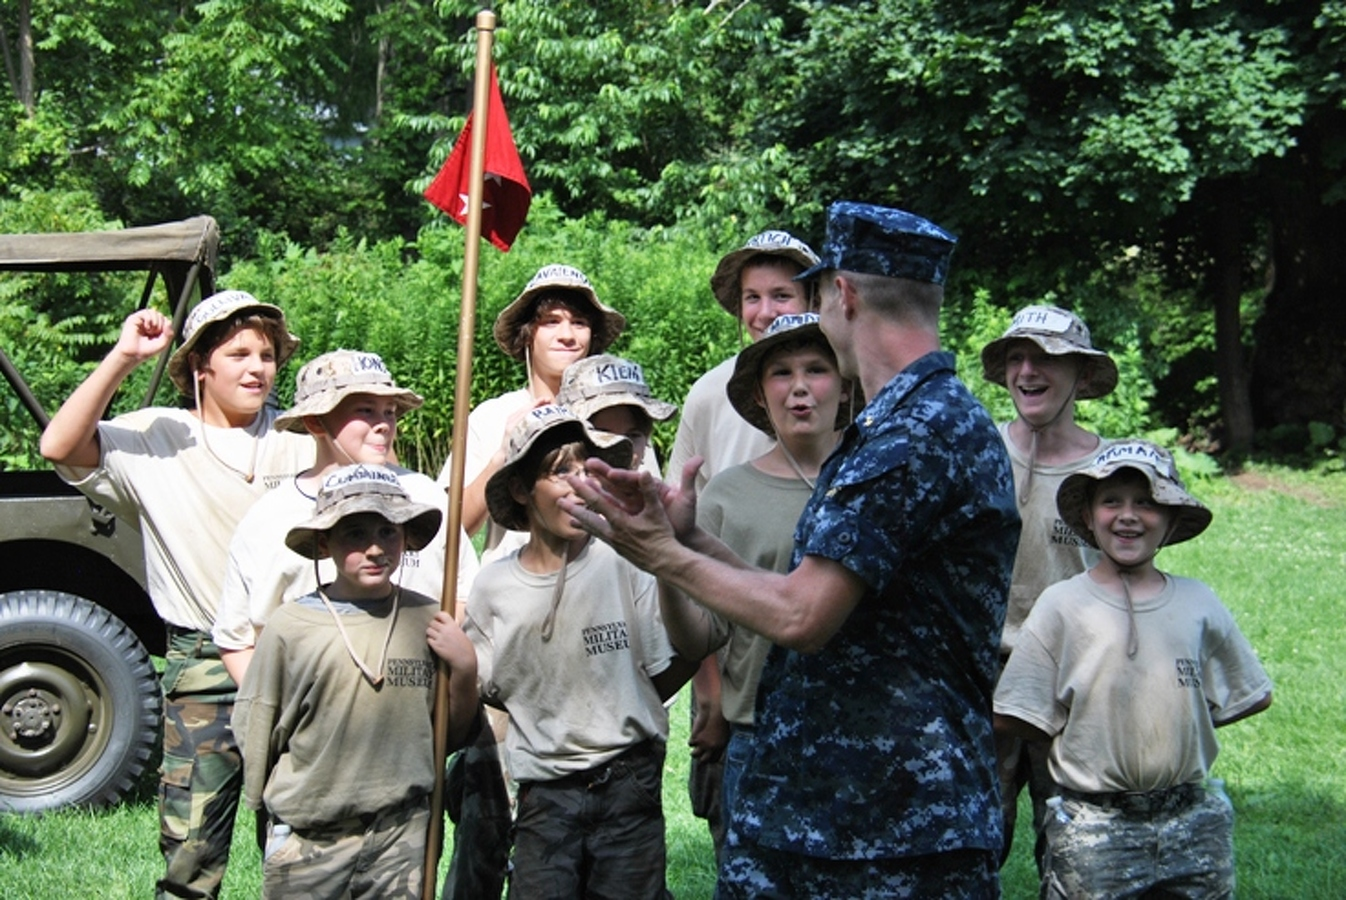 Local teens get first glimpse of boot camp | Article | The